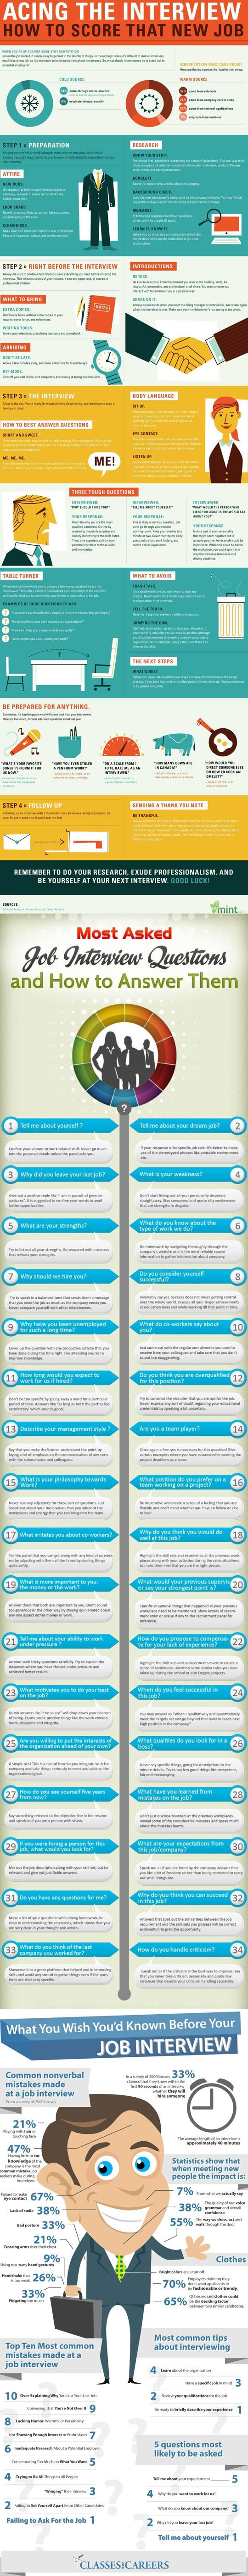 Most Asked Job Interview Questions & How to Answer Them